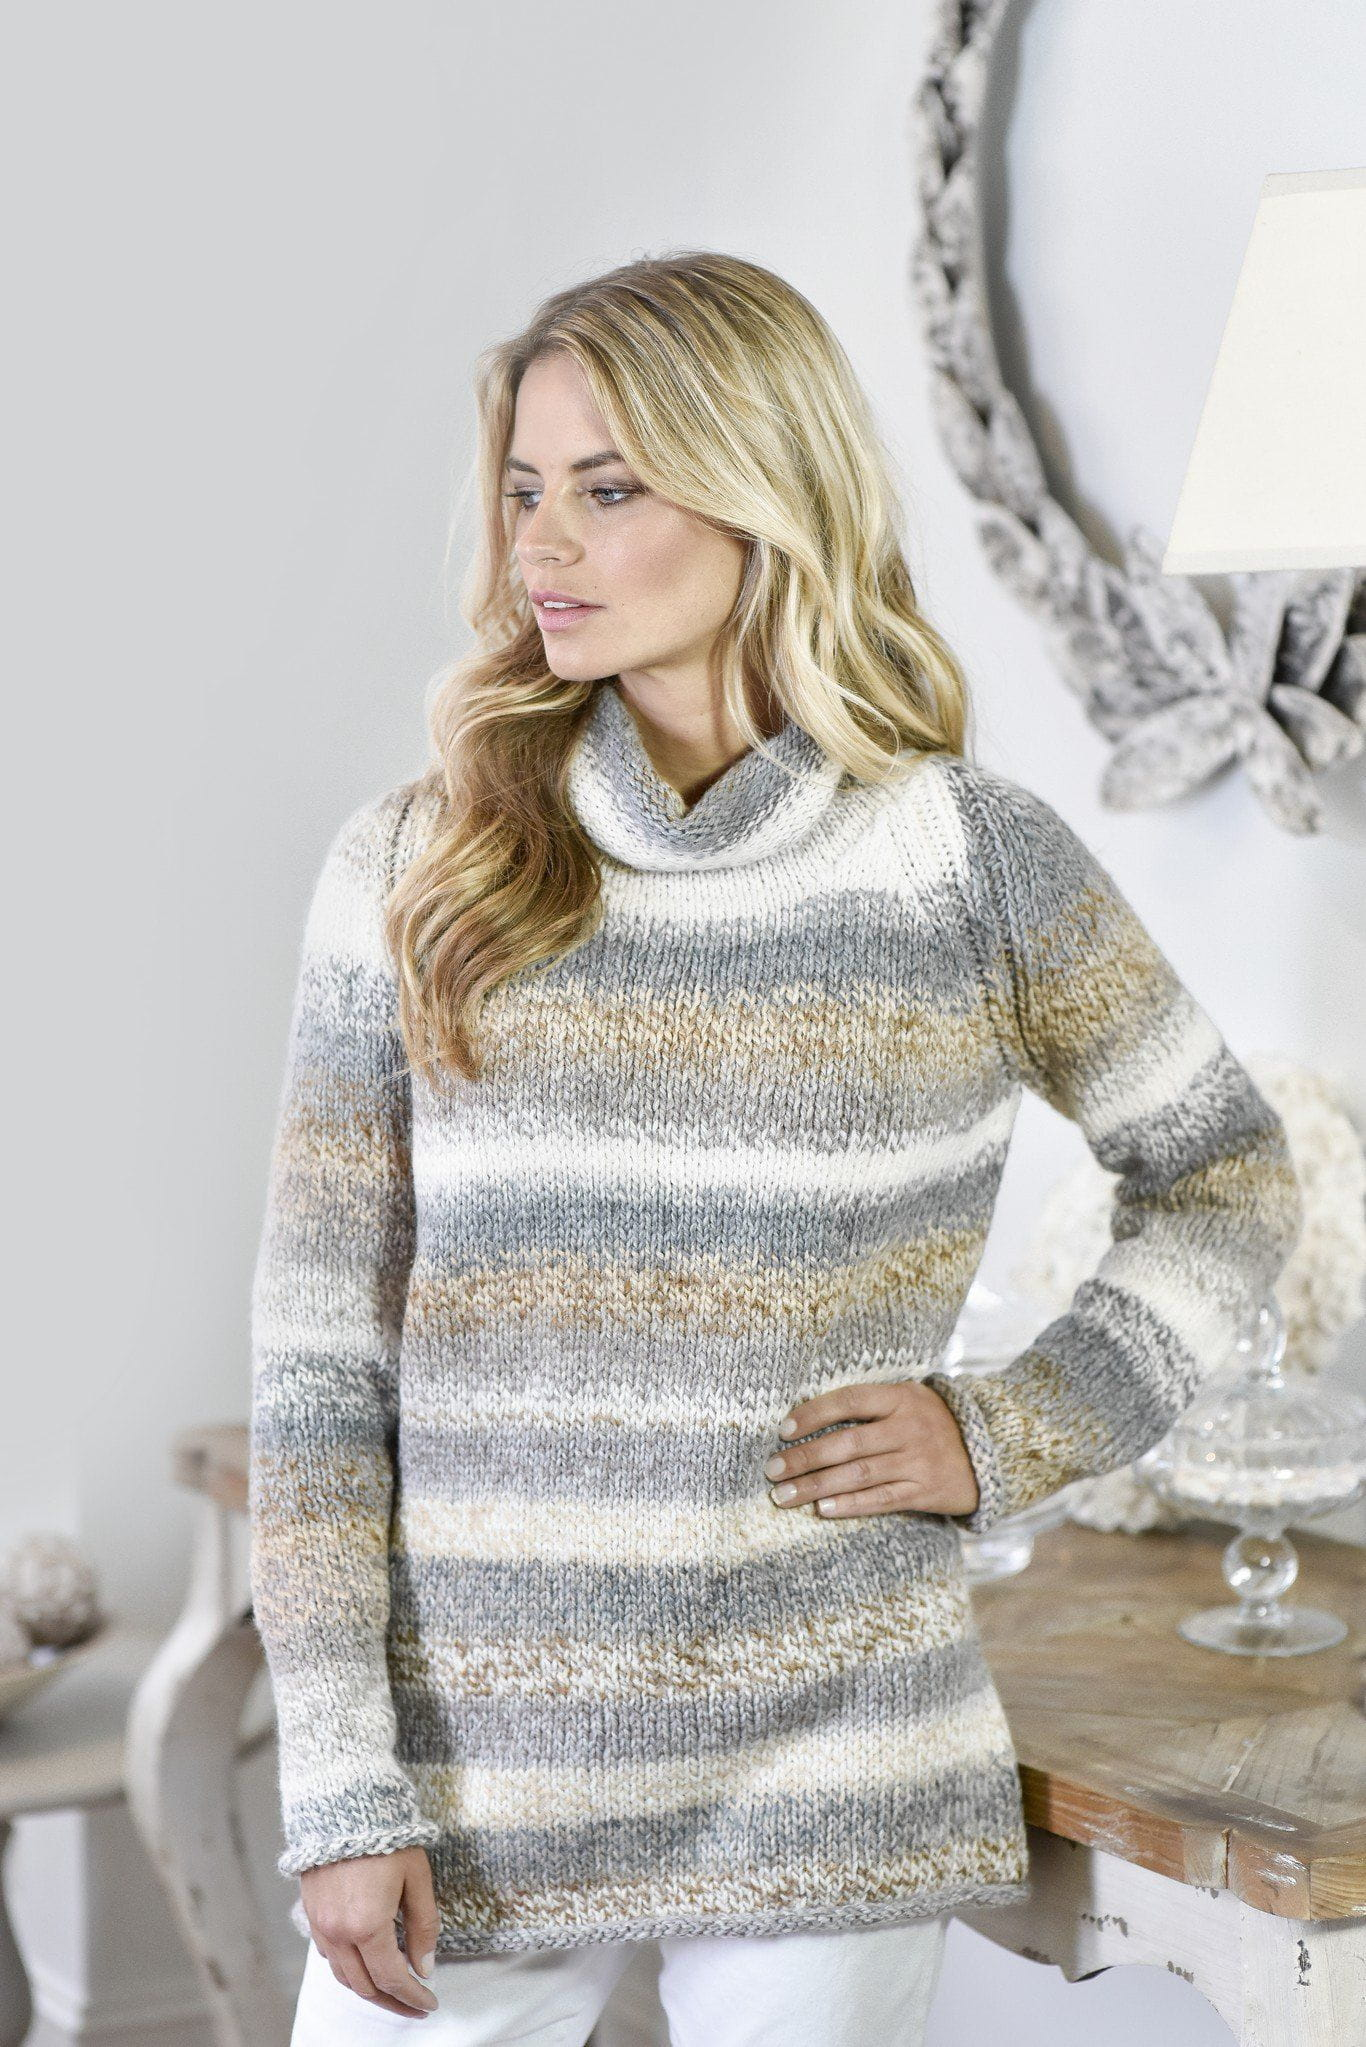 Roll Neck Raglan Sweater Knitting Pattern – The Knitting Network